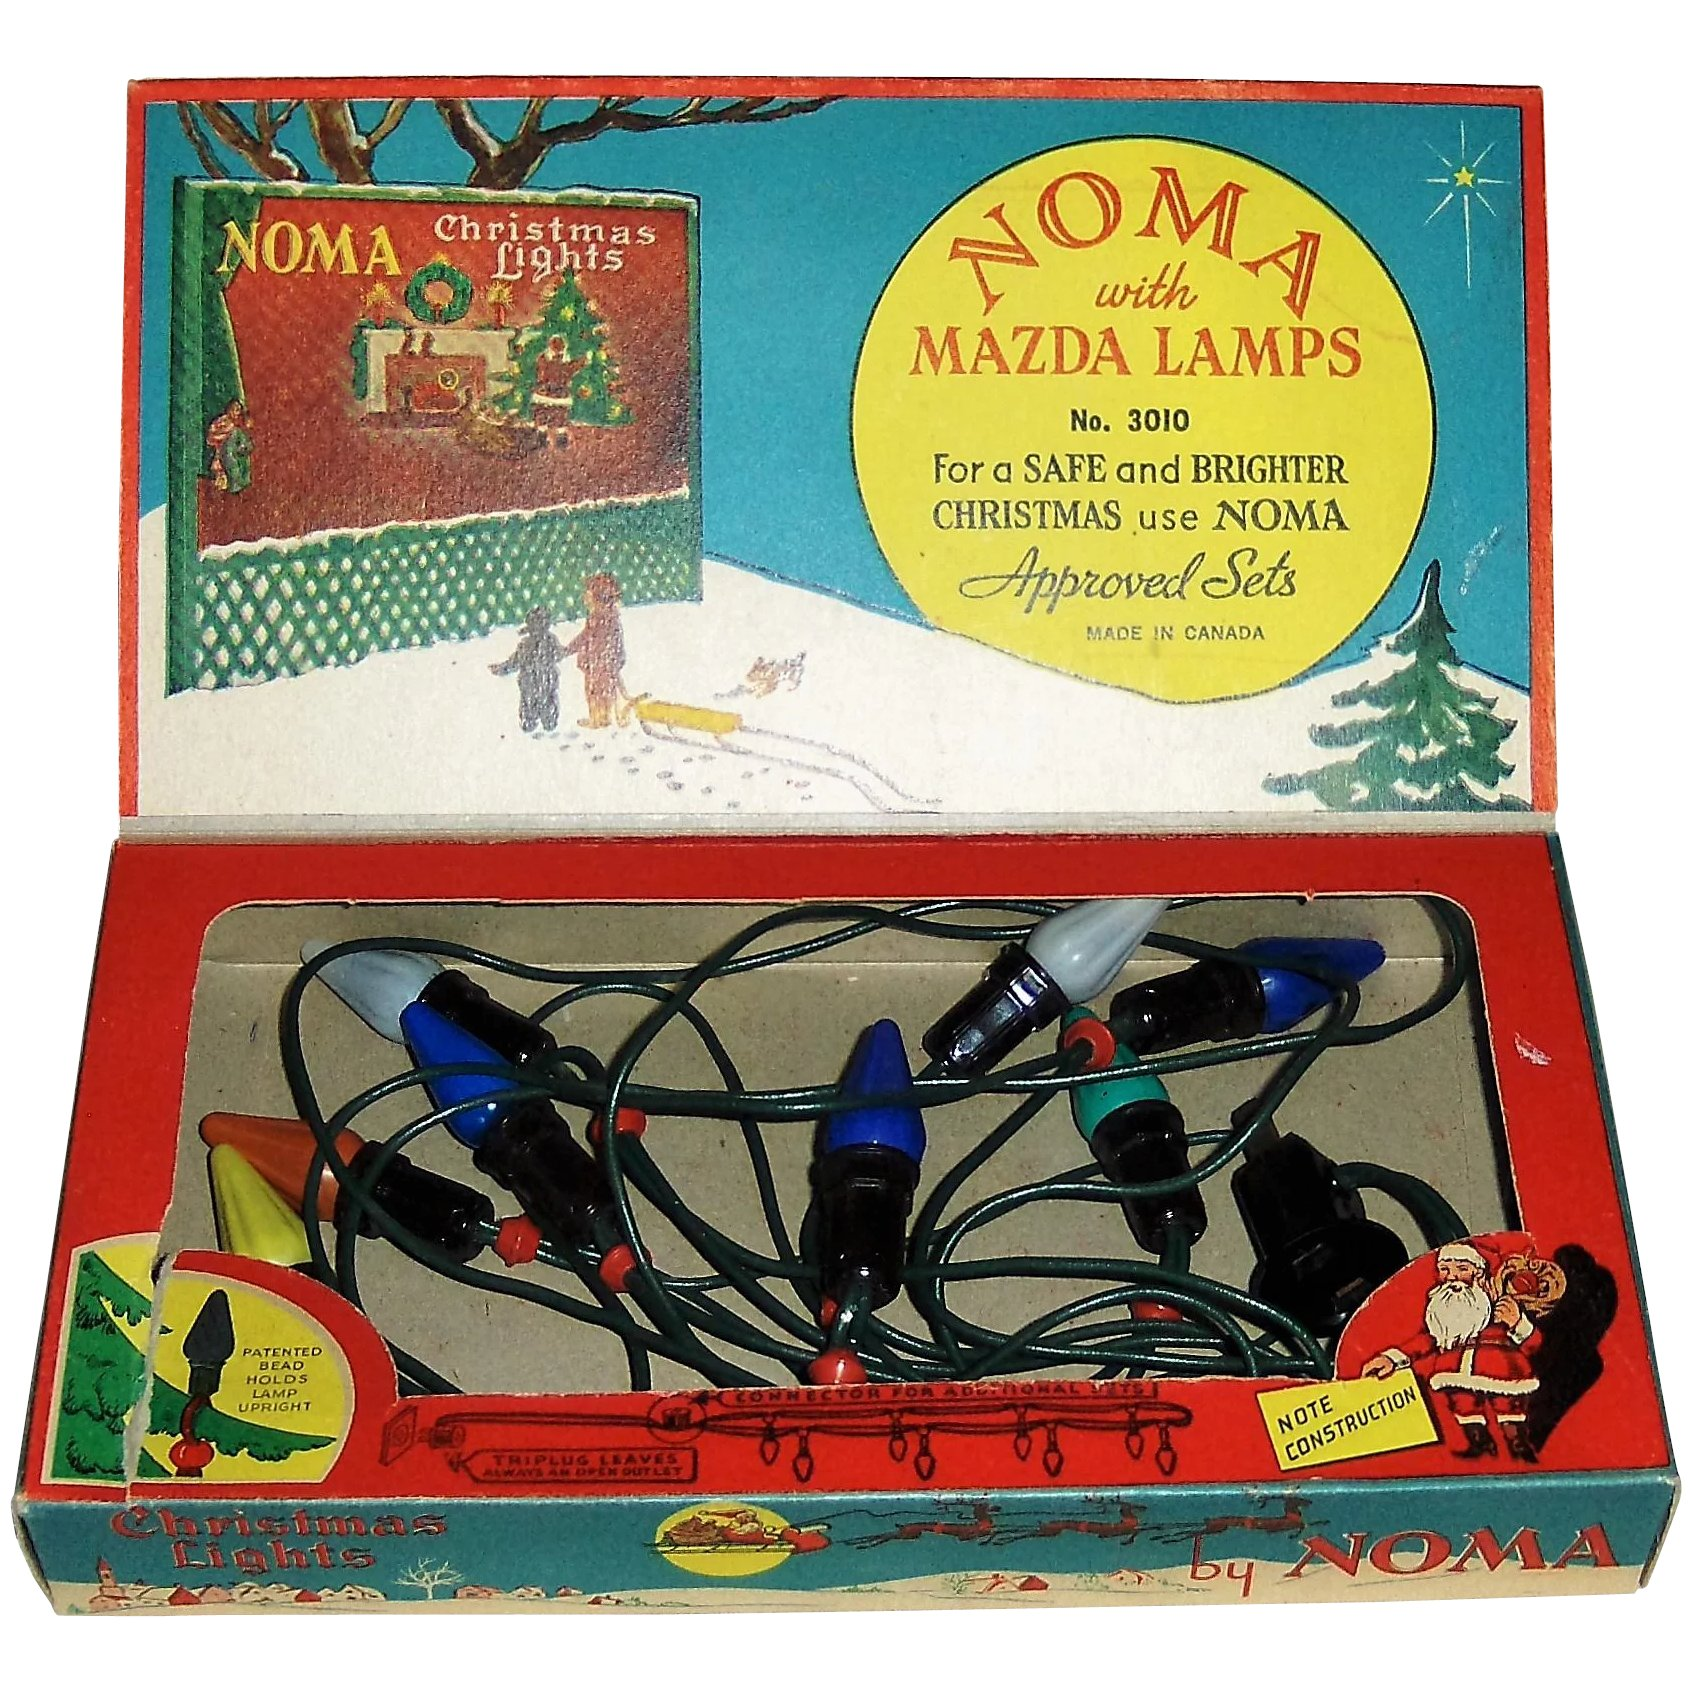 8 Bulb Christmas Lights by Noma with box SOLD | Ruby Lane